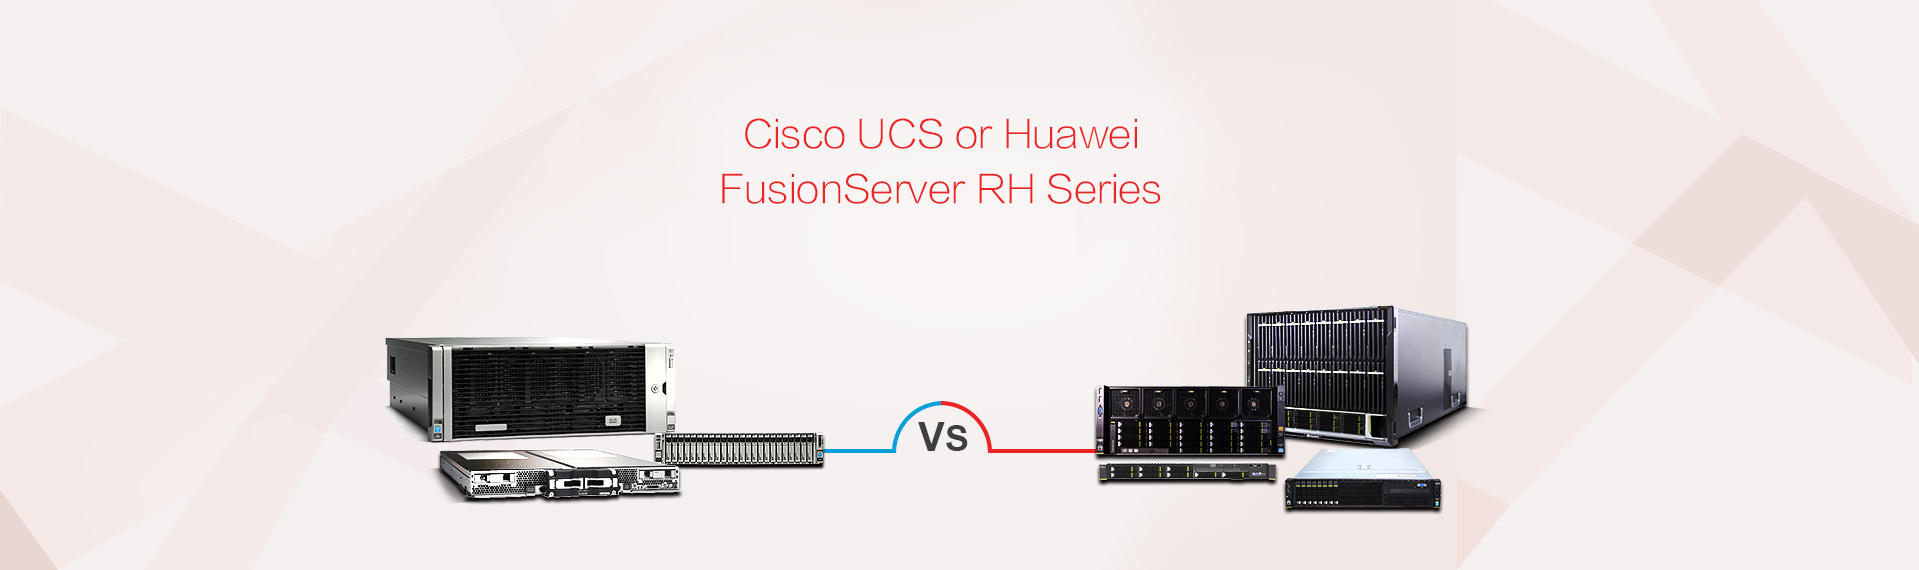 Comparison between Cisco UCS Server and Huawei Server